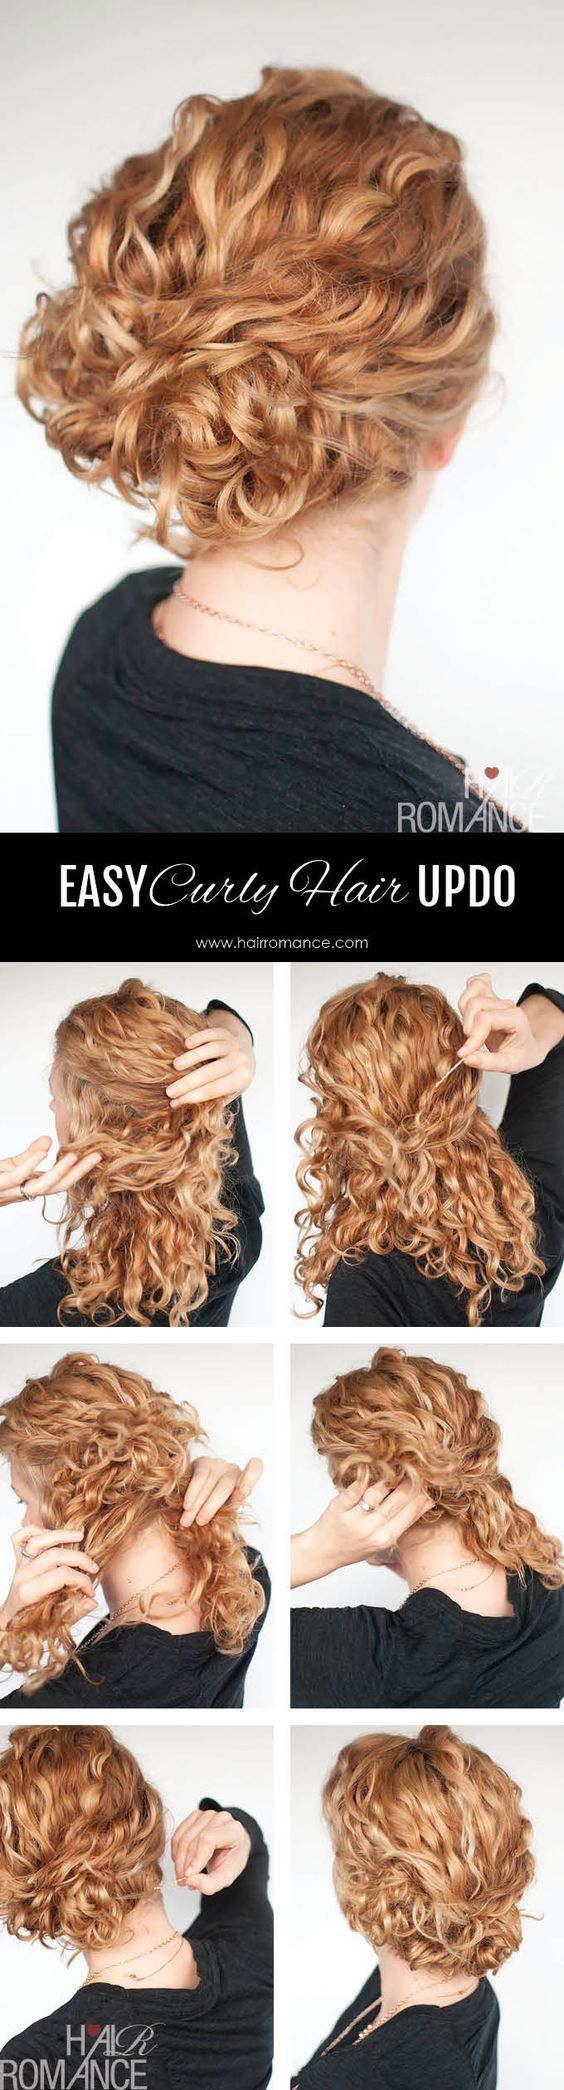 Hair Romance - Curly Hair Tutorial - easy curly updo